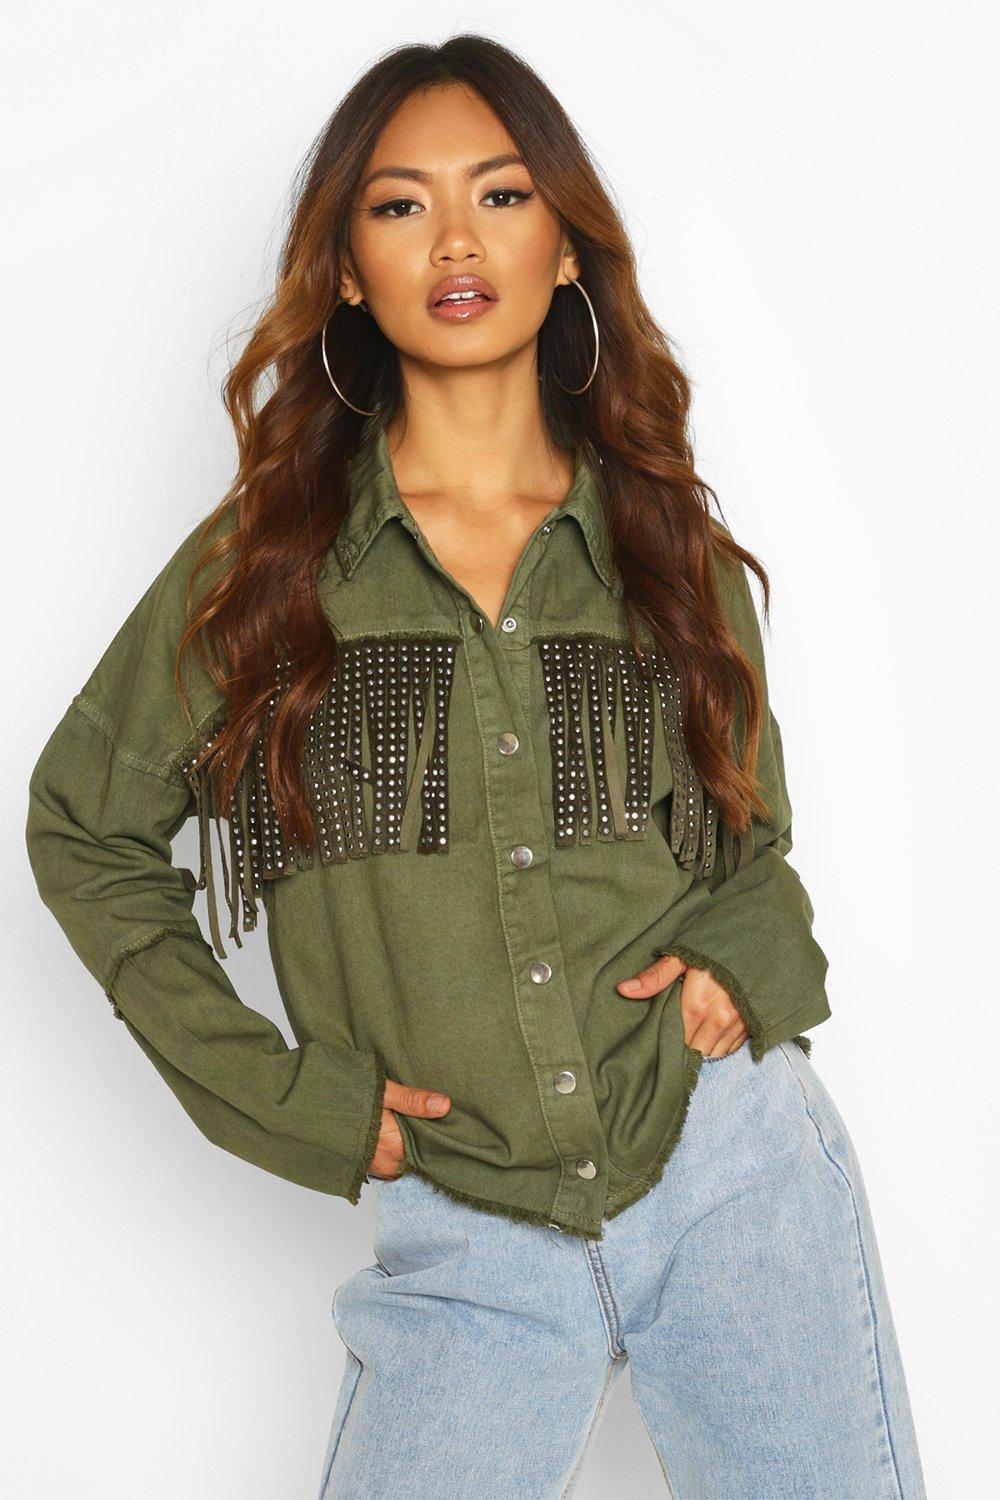 boohoo Womens Studded Tassell Front Denim Shirt Jacket - Green - 12, Green